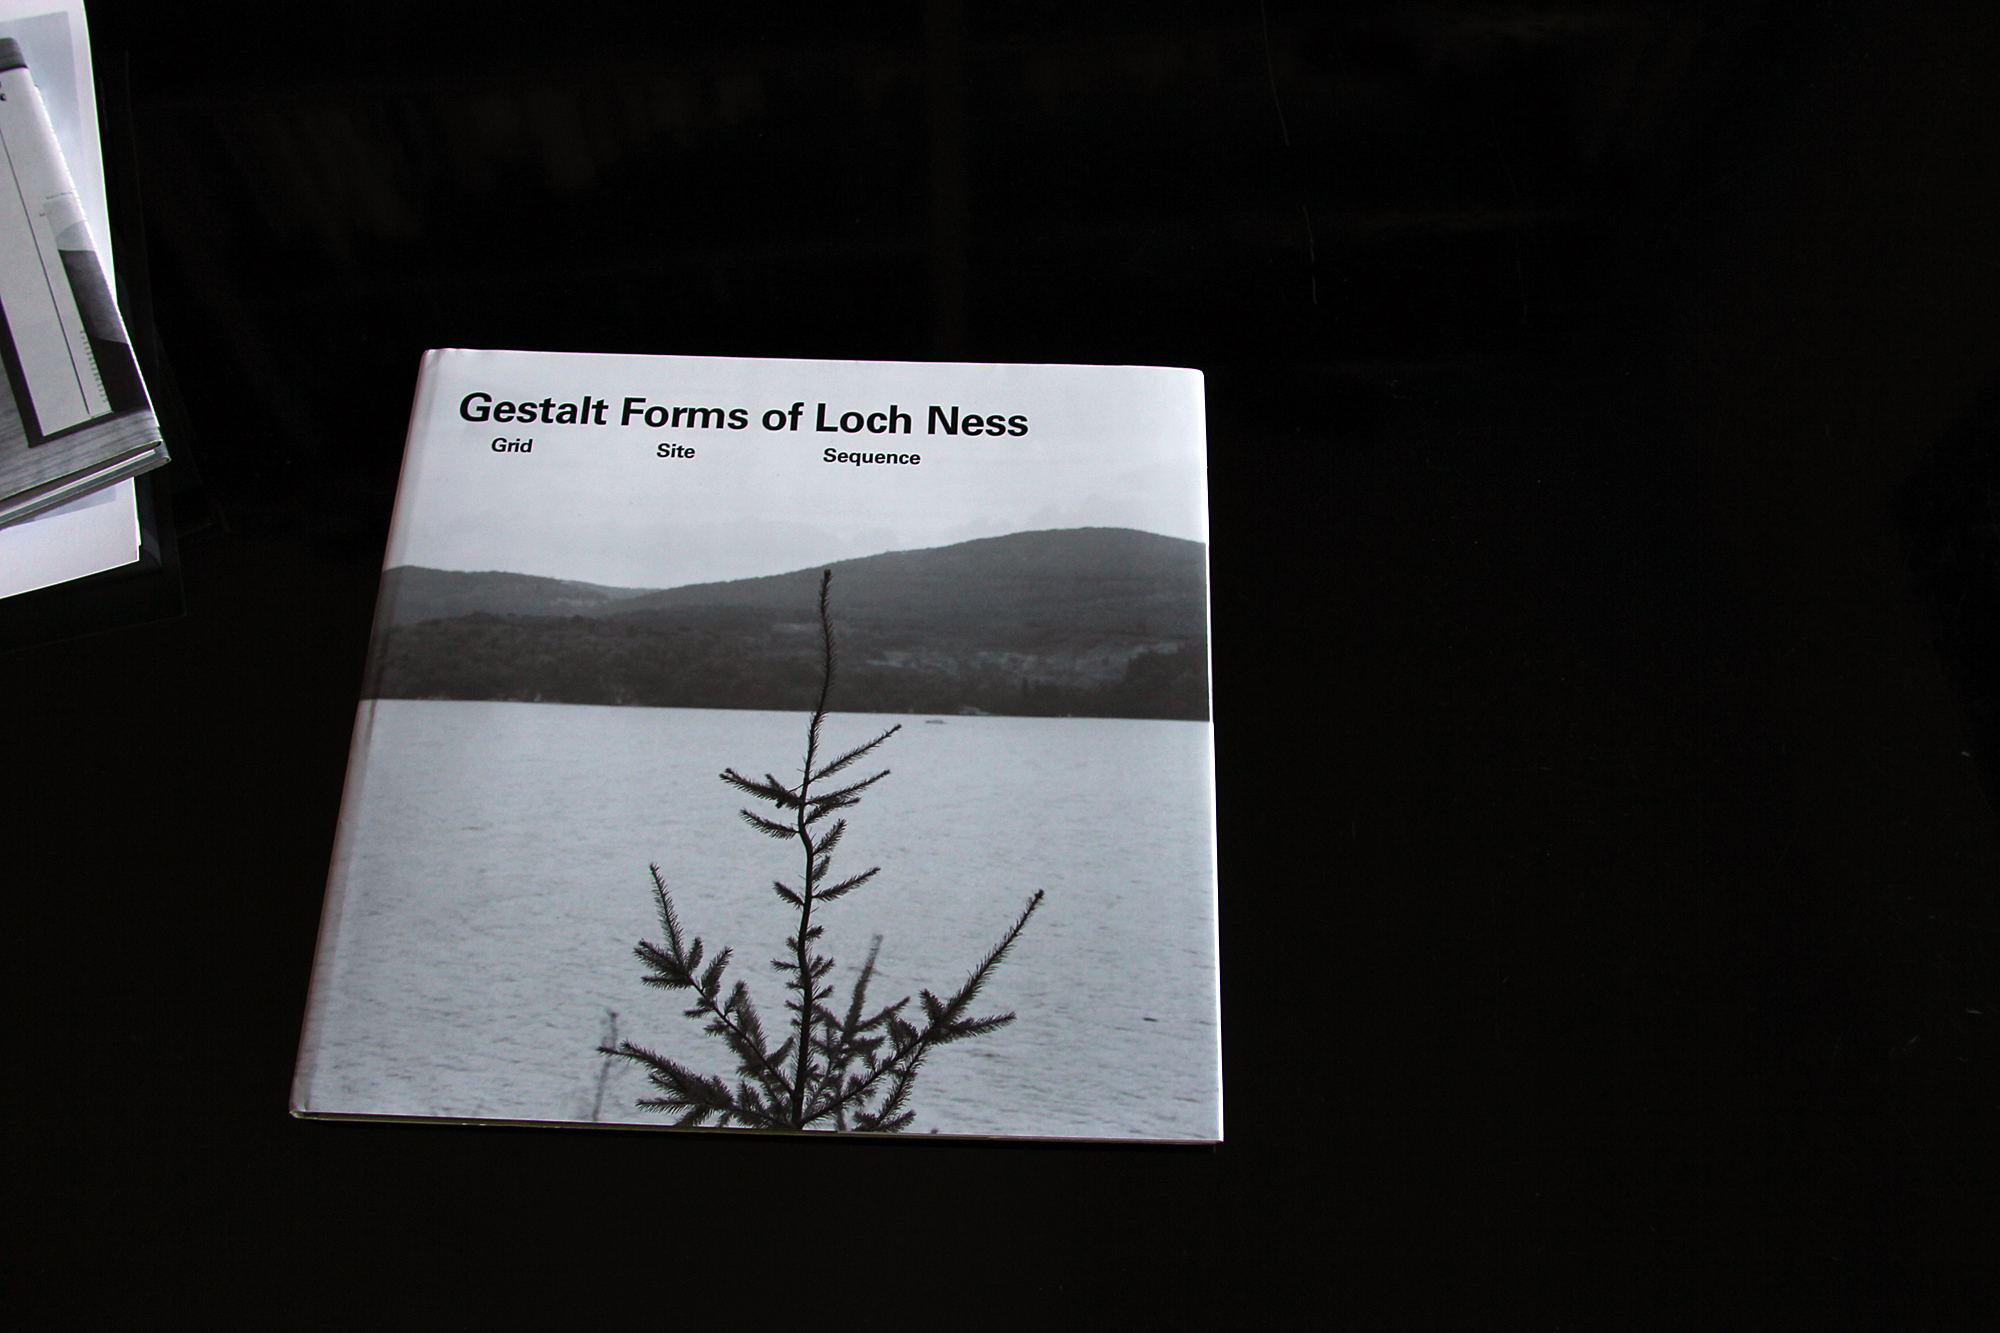 Cover image: Gestalt forms of Loch Ness: grid site sequence (2012)